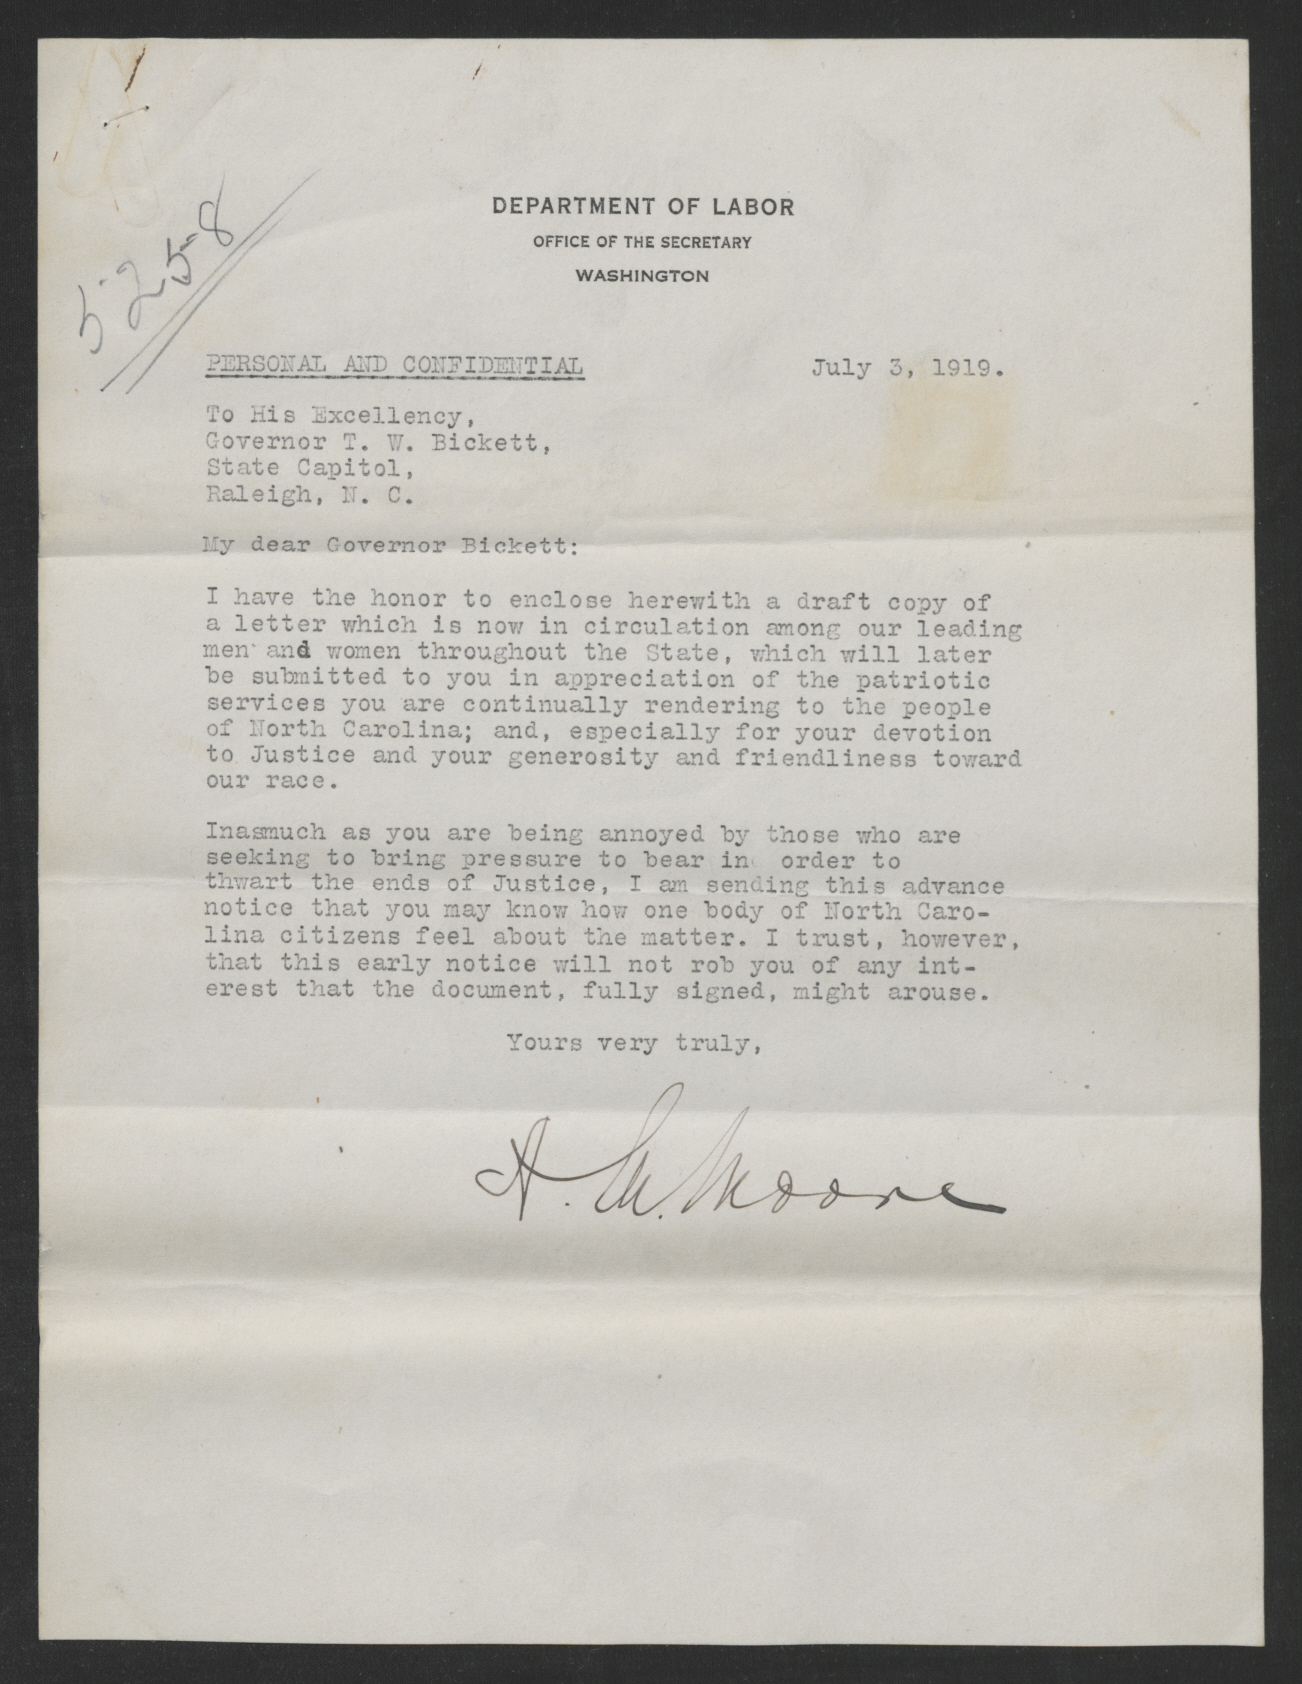 Letter from Aaron M. Moore to Gov. Thomas W. Bickett, July 3, 1919